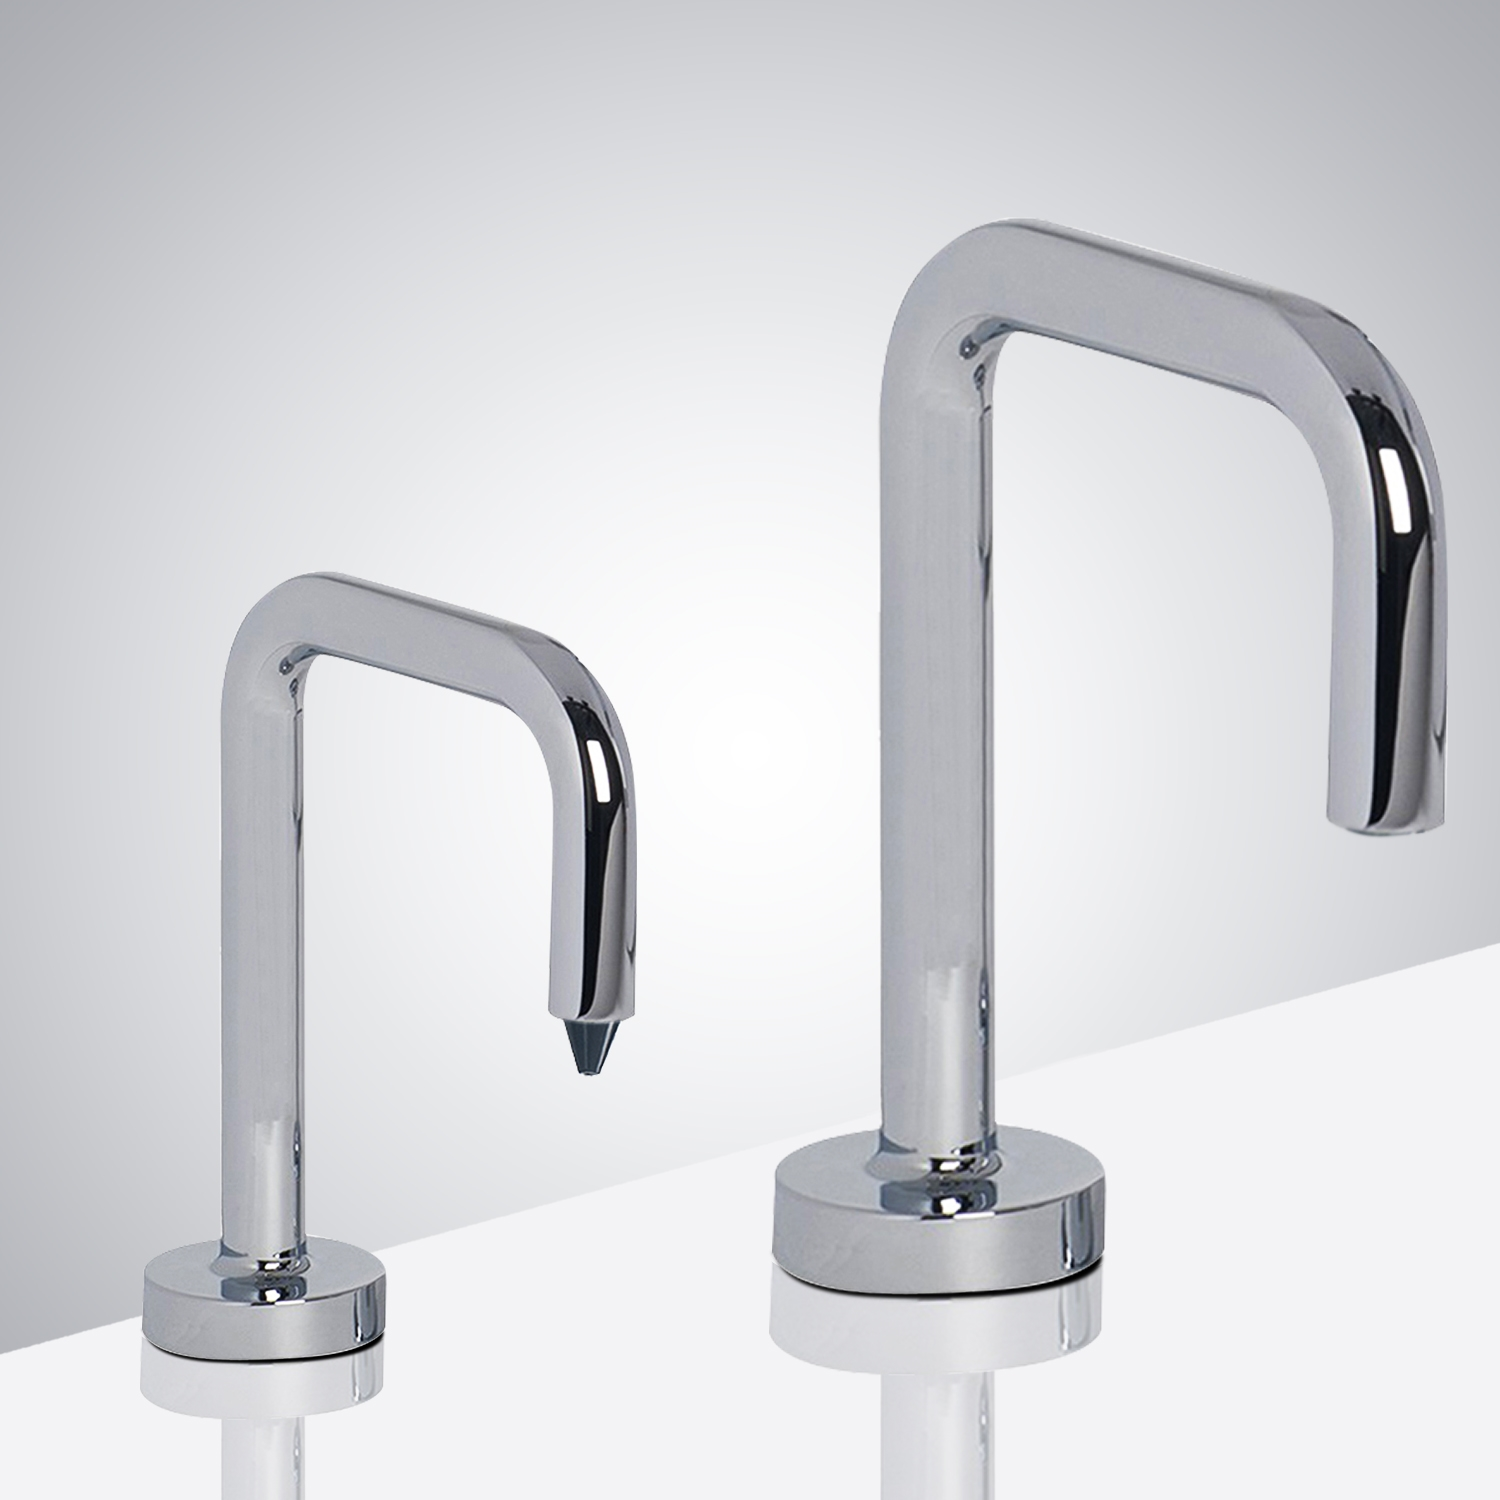 Fontana Reno Inverted U-Shaped Chrome Finish Freestanding Dual Automatic Commercial Sensor Faucet And Soap Dispenser